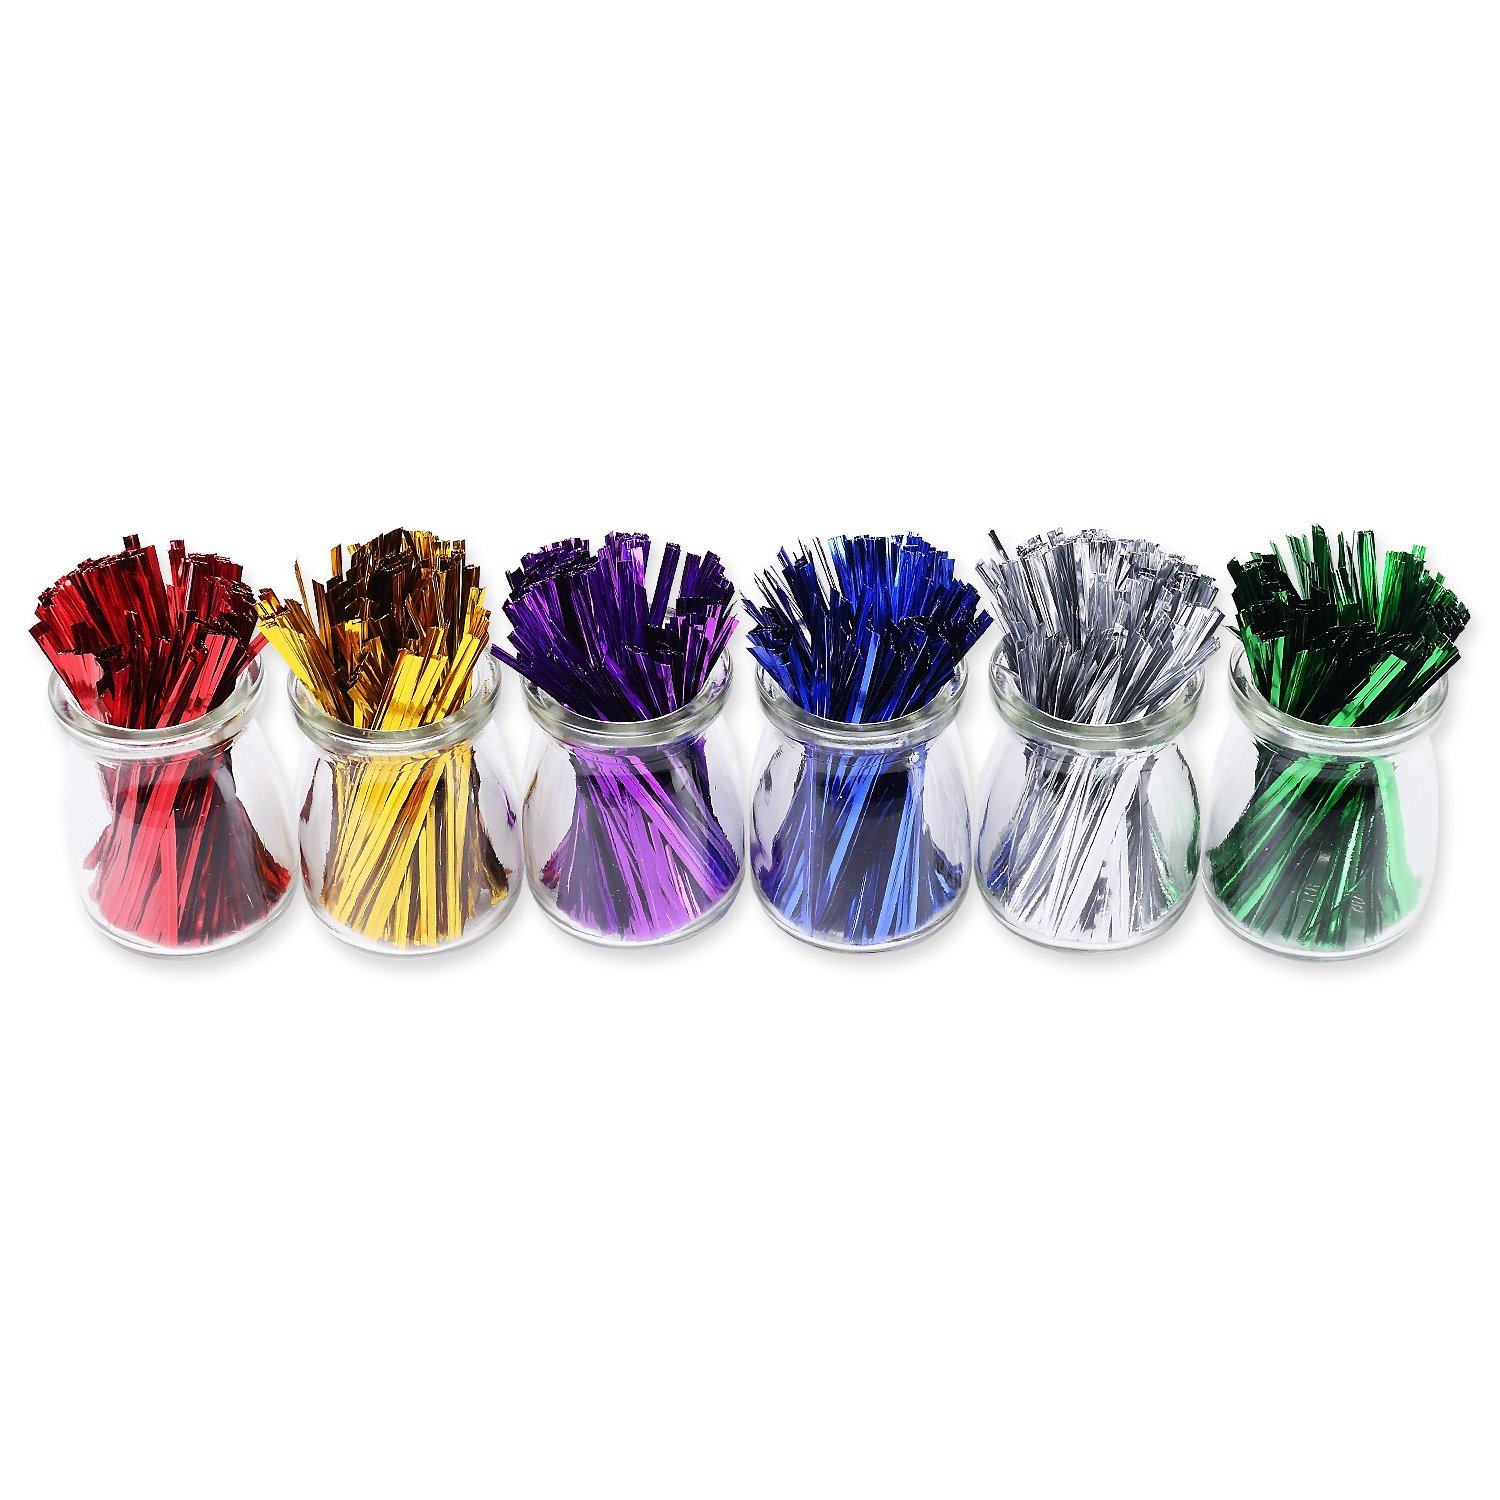 twist ties best reviewed unique colorful fasteners metallic sago brothers